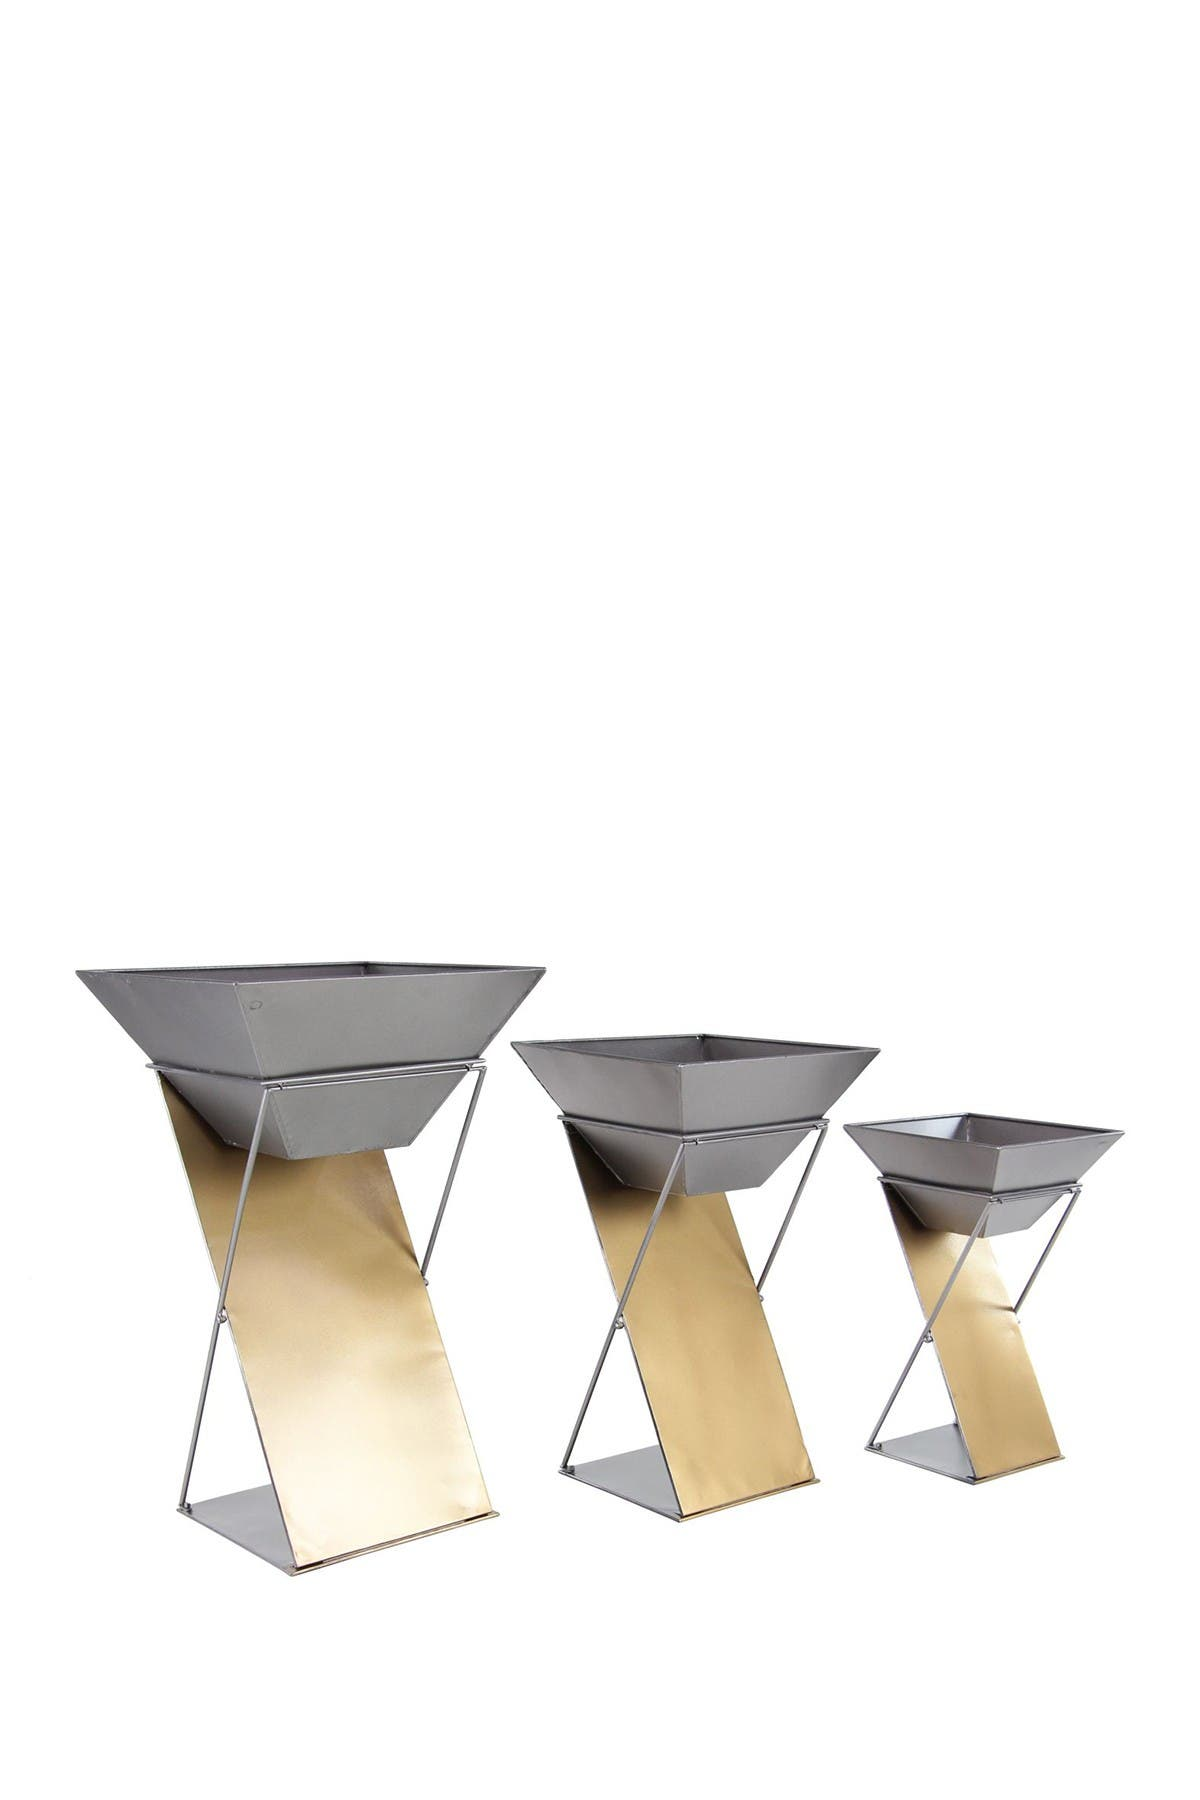 Image of Willow Row Grey Modern Inverted Trapezoid Planter - Set of 3